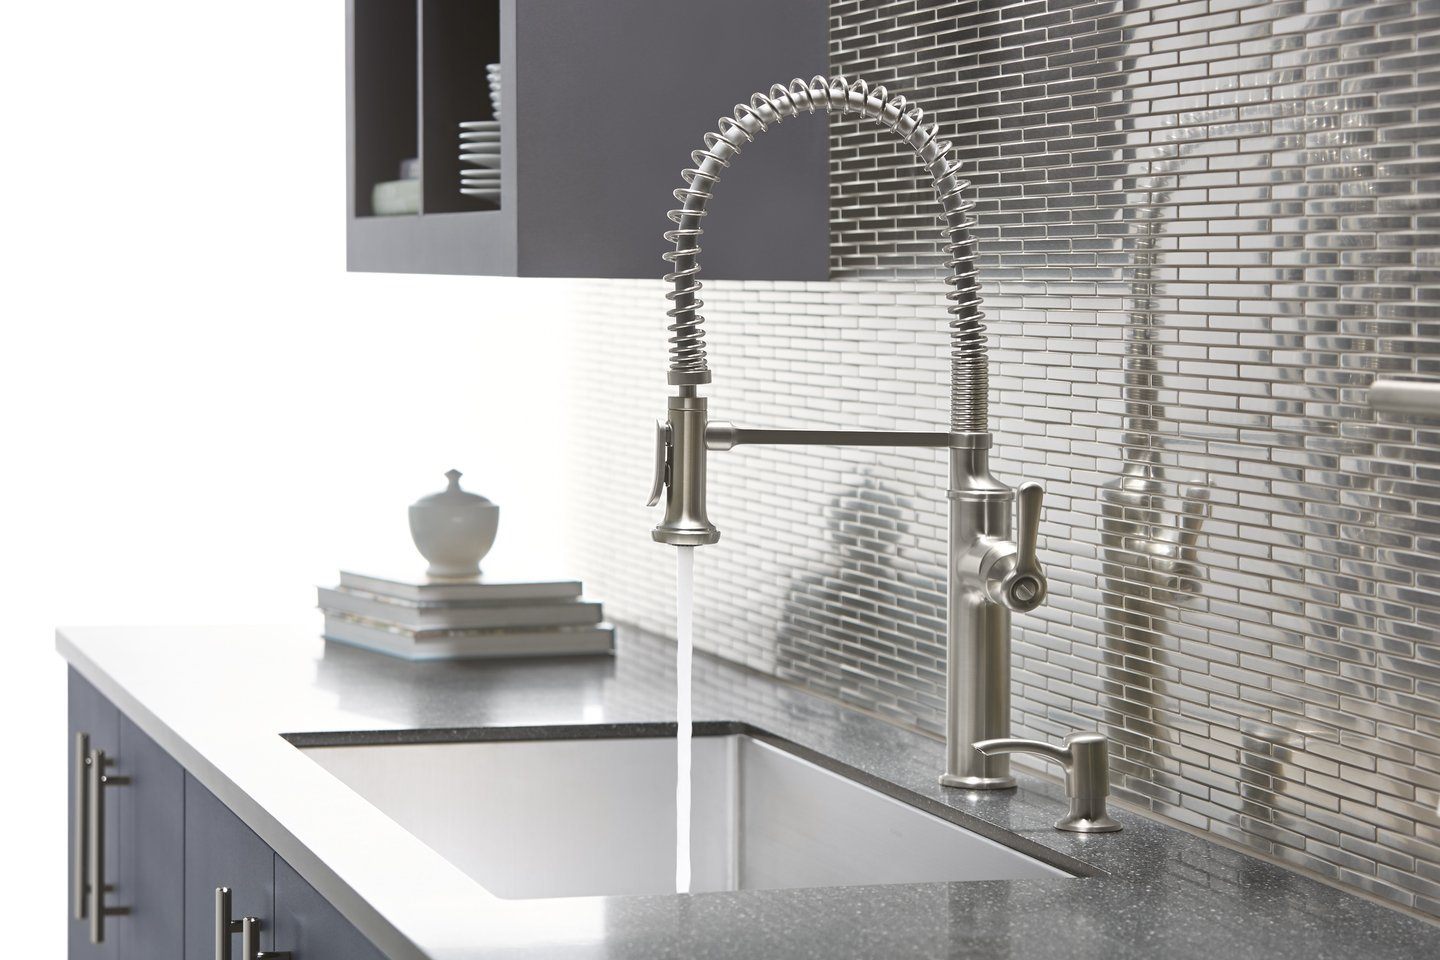 choosing a kitchen faucet is similar to choosing a husband 5 tips for choosing a kitchen faucet you need to know